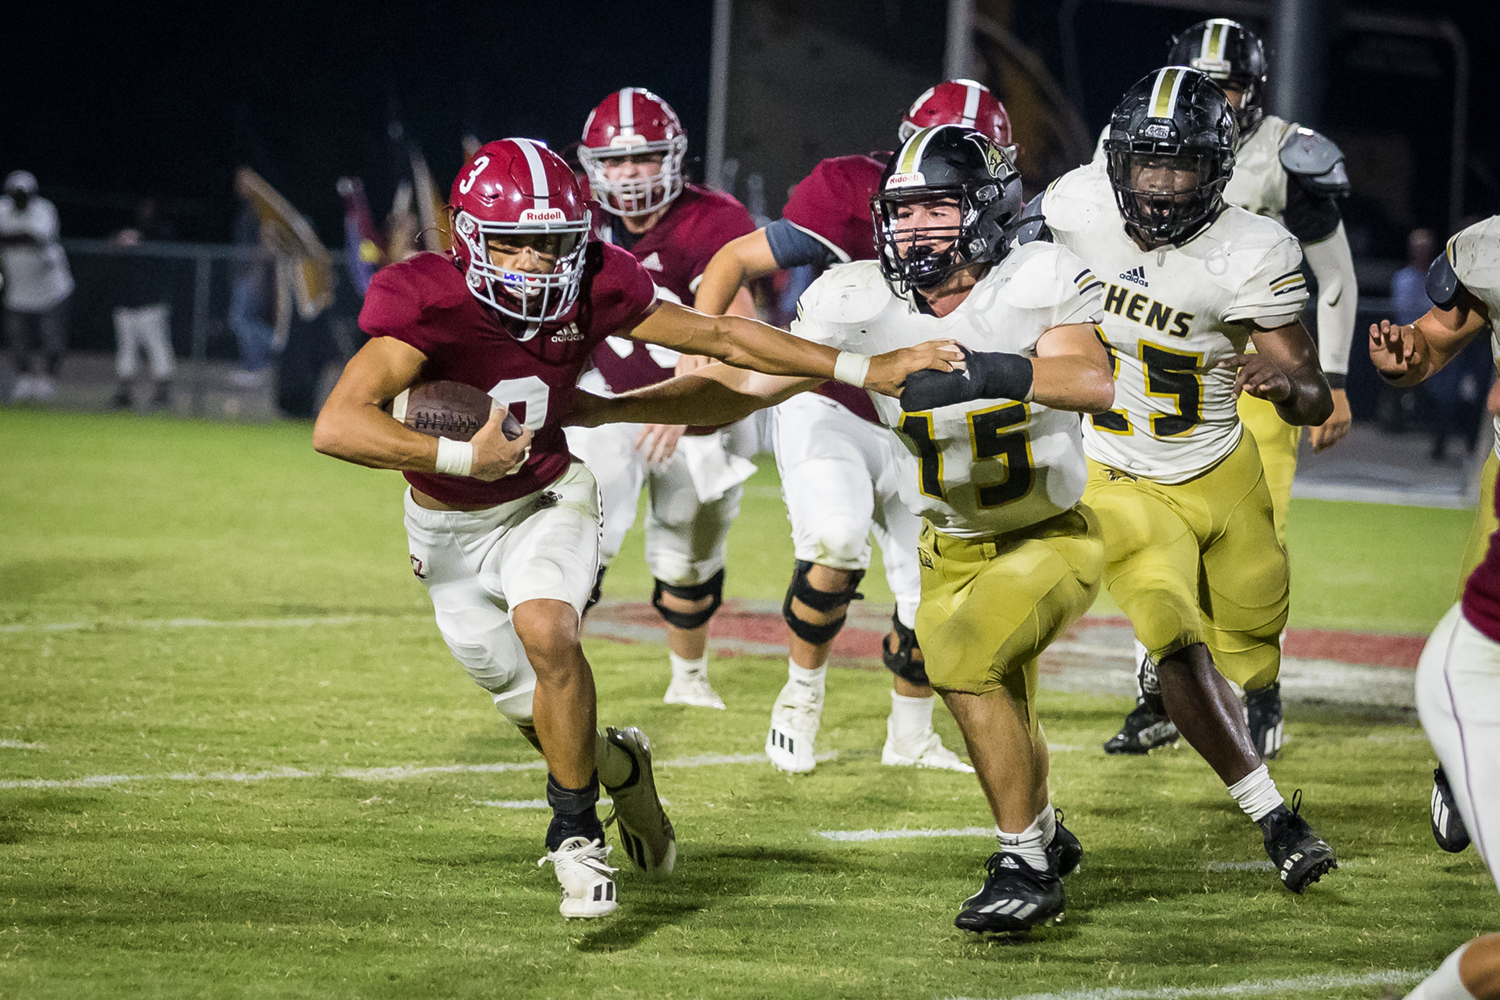 Hartselle pulls away for a 45-34 win over Athens